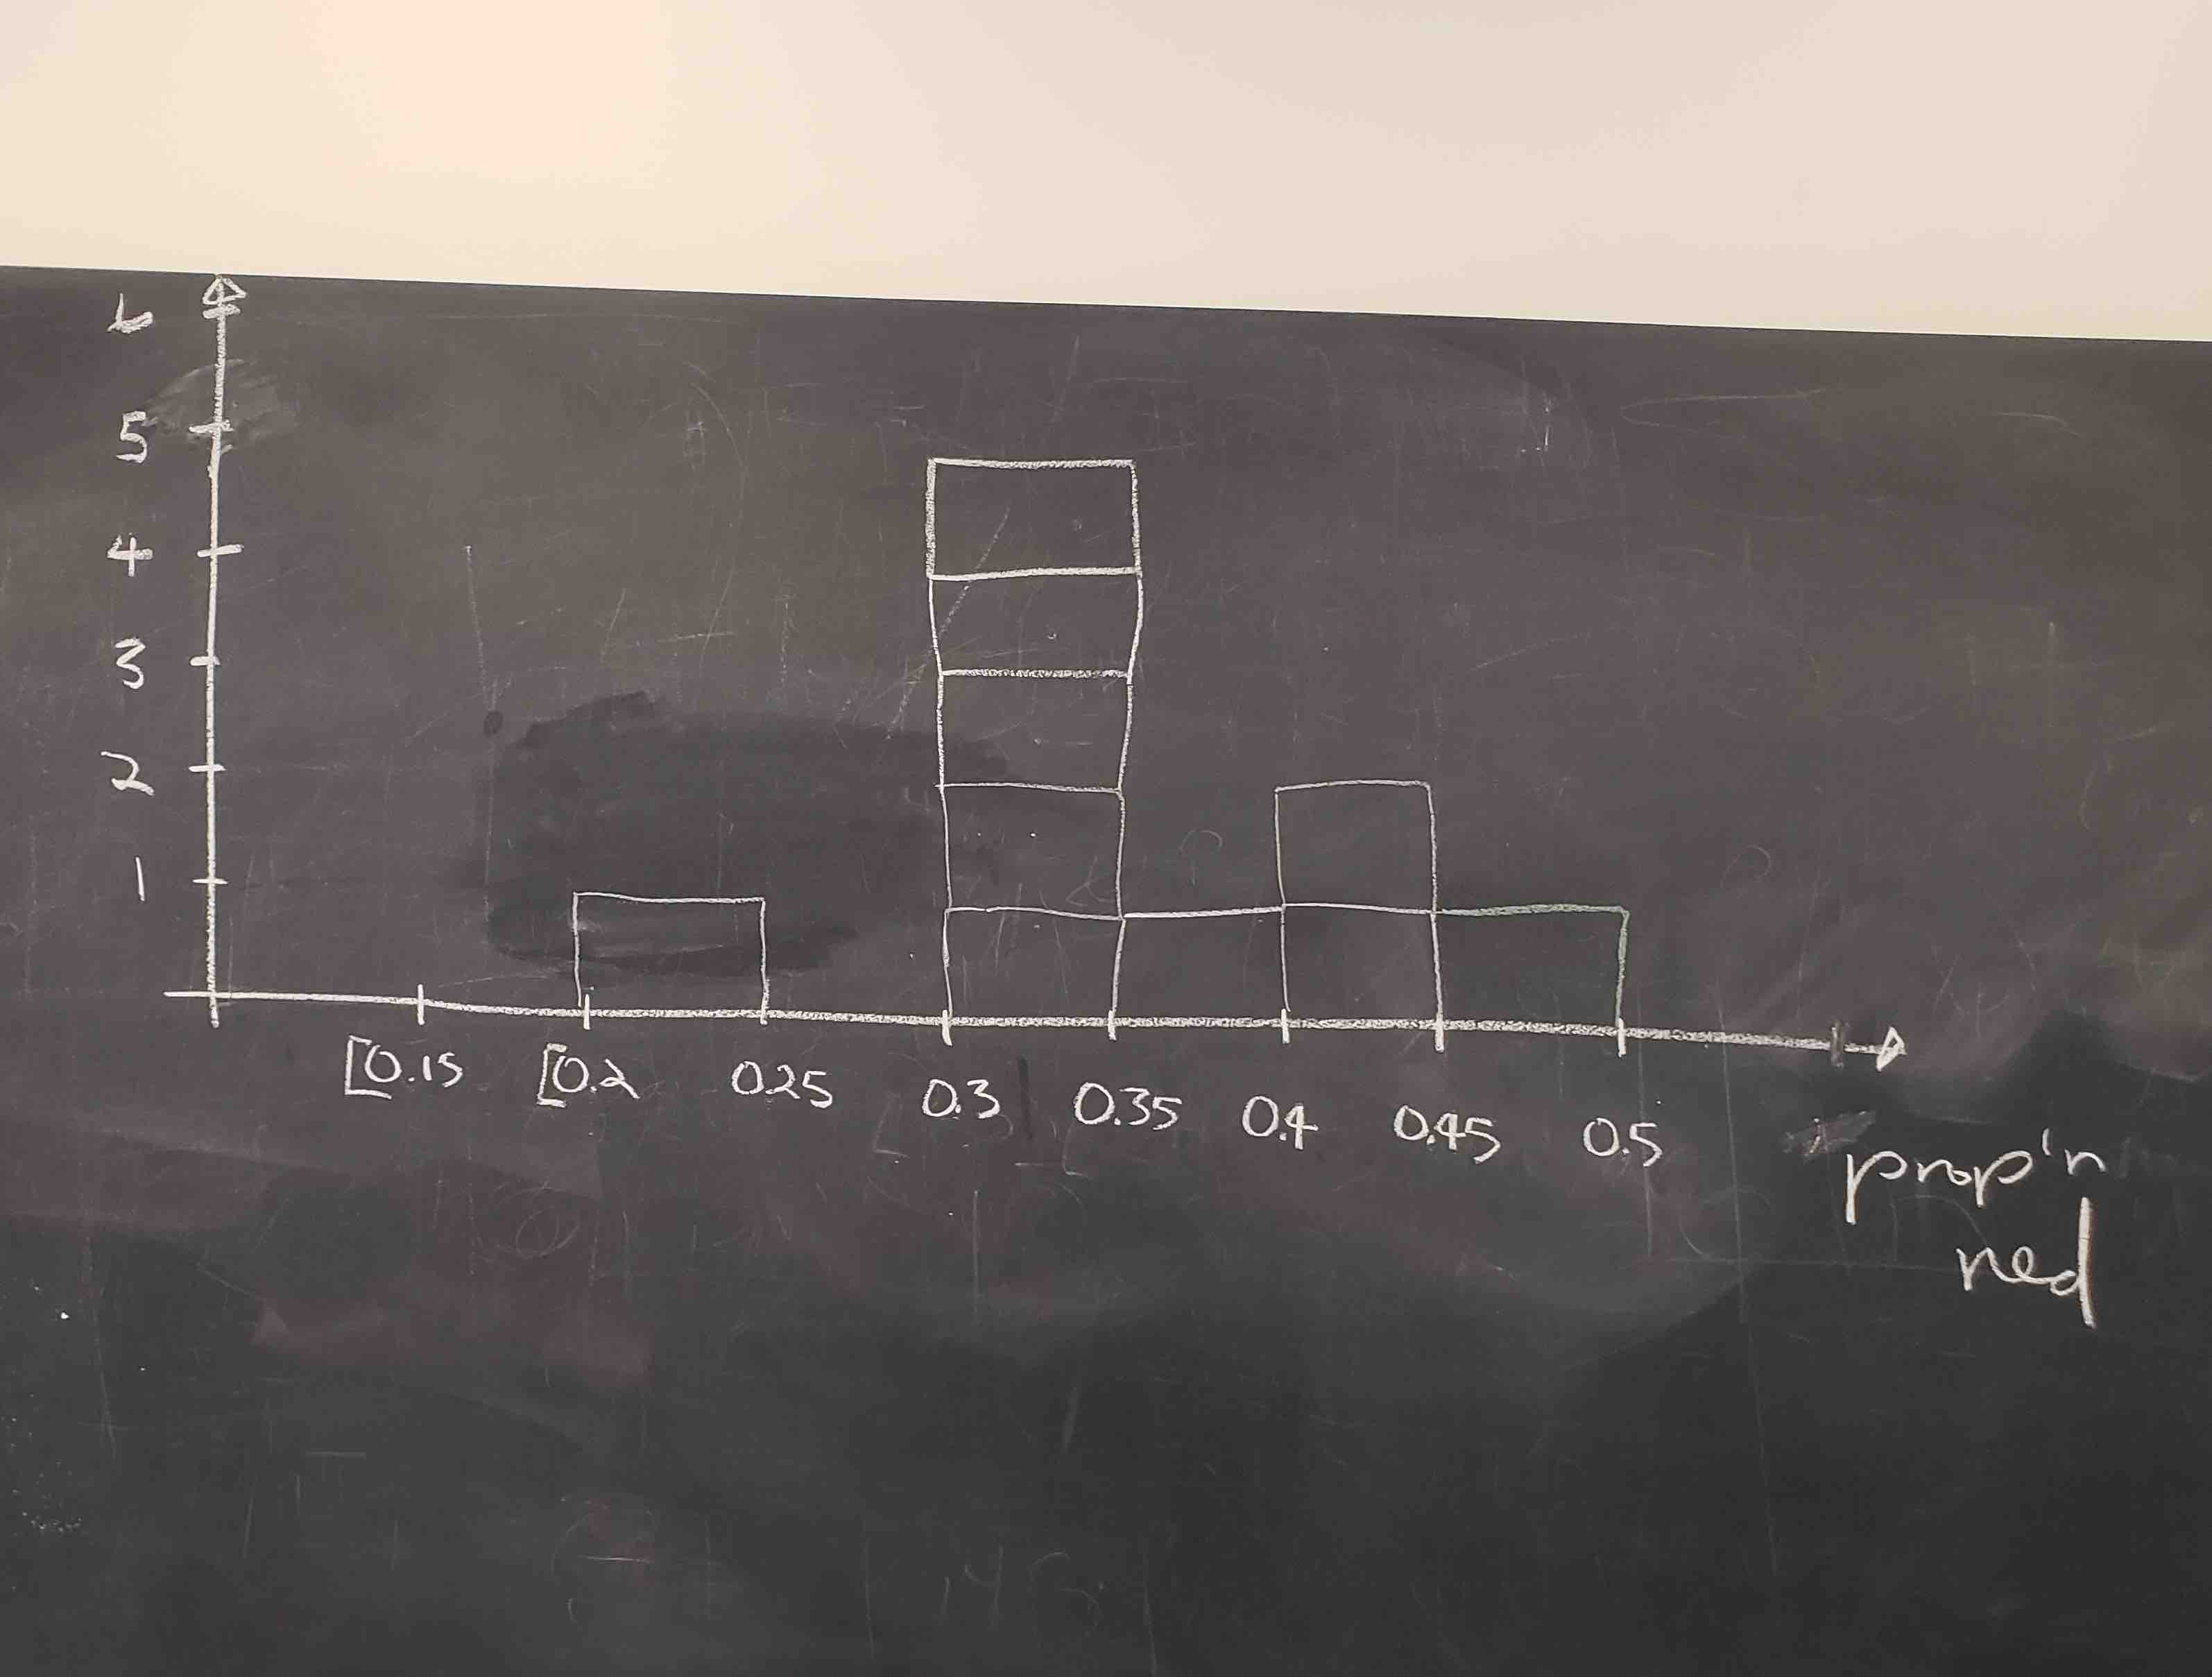 Hand-drawn histogram of first 10 out of 33 proportions.